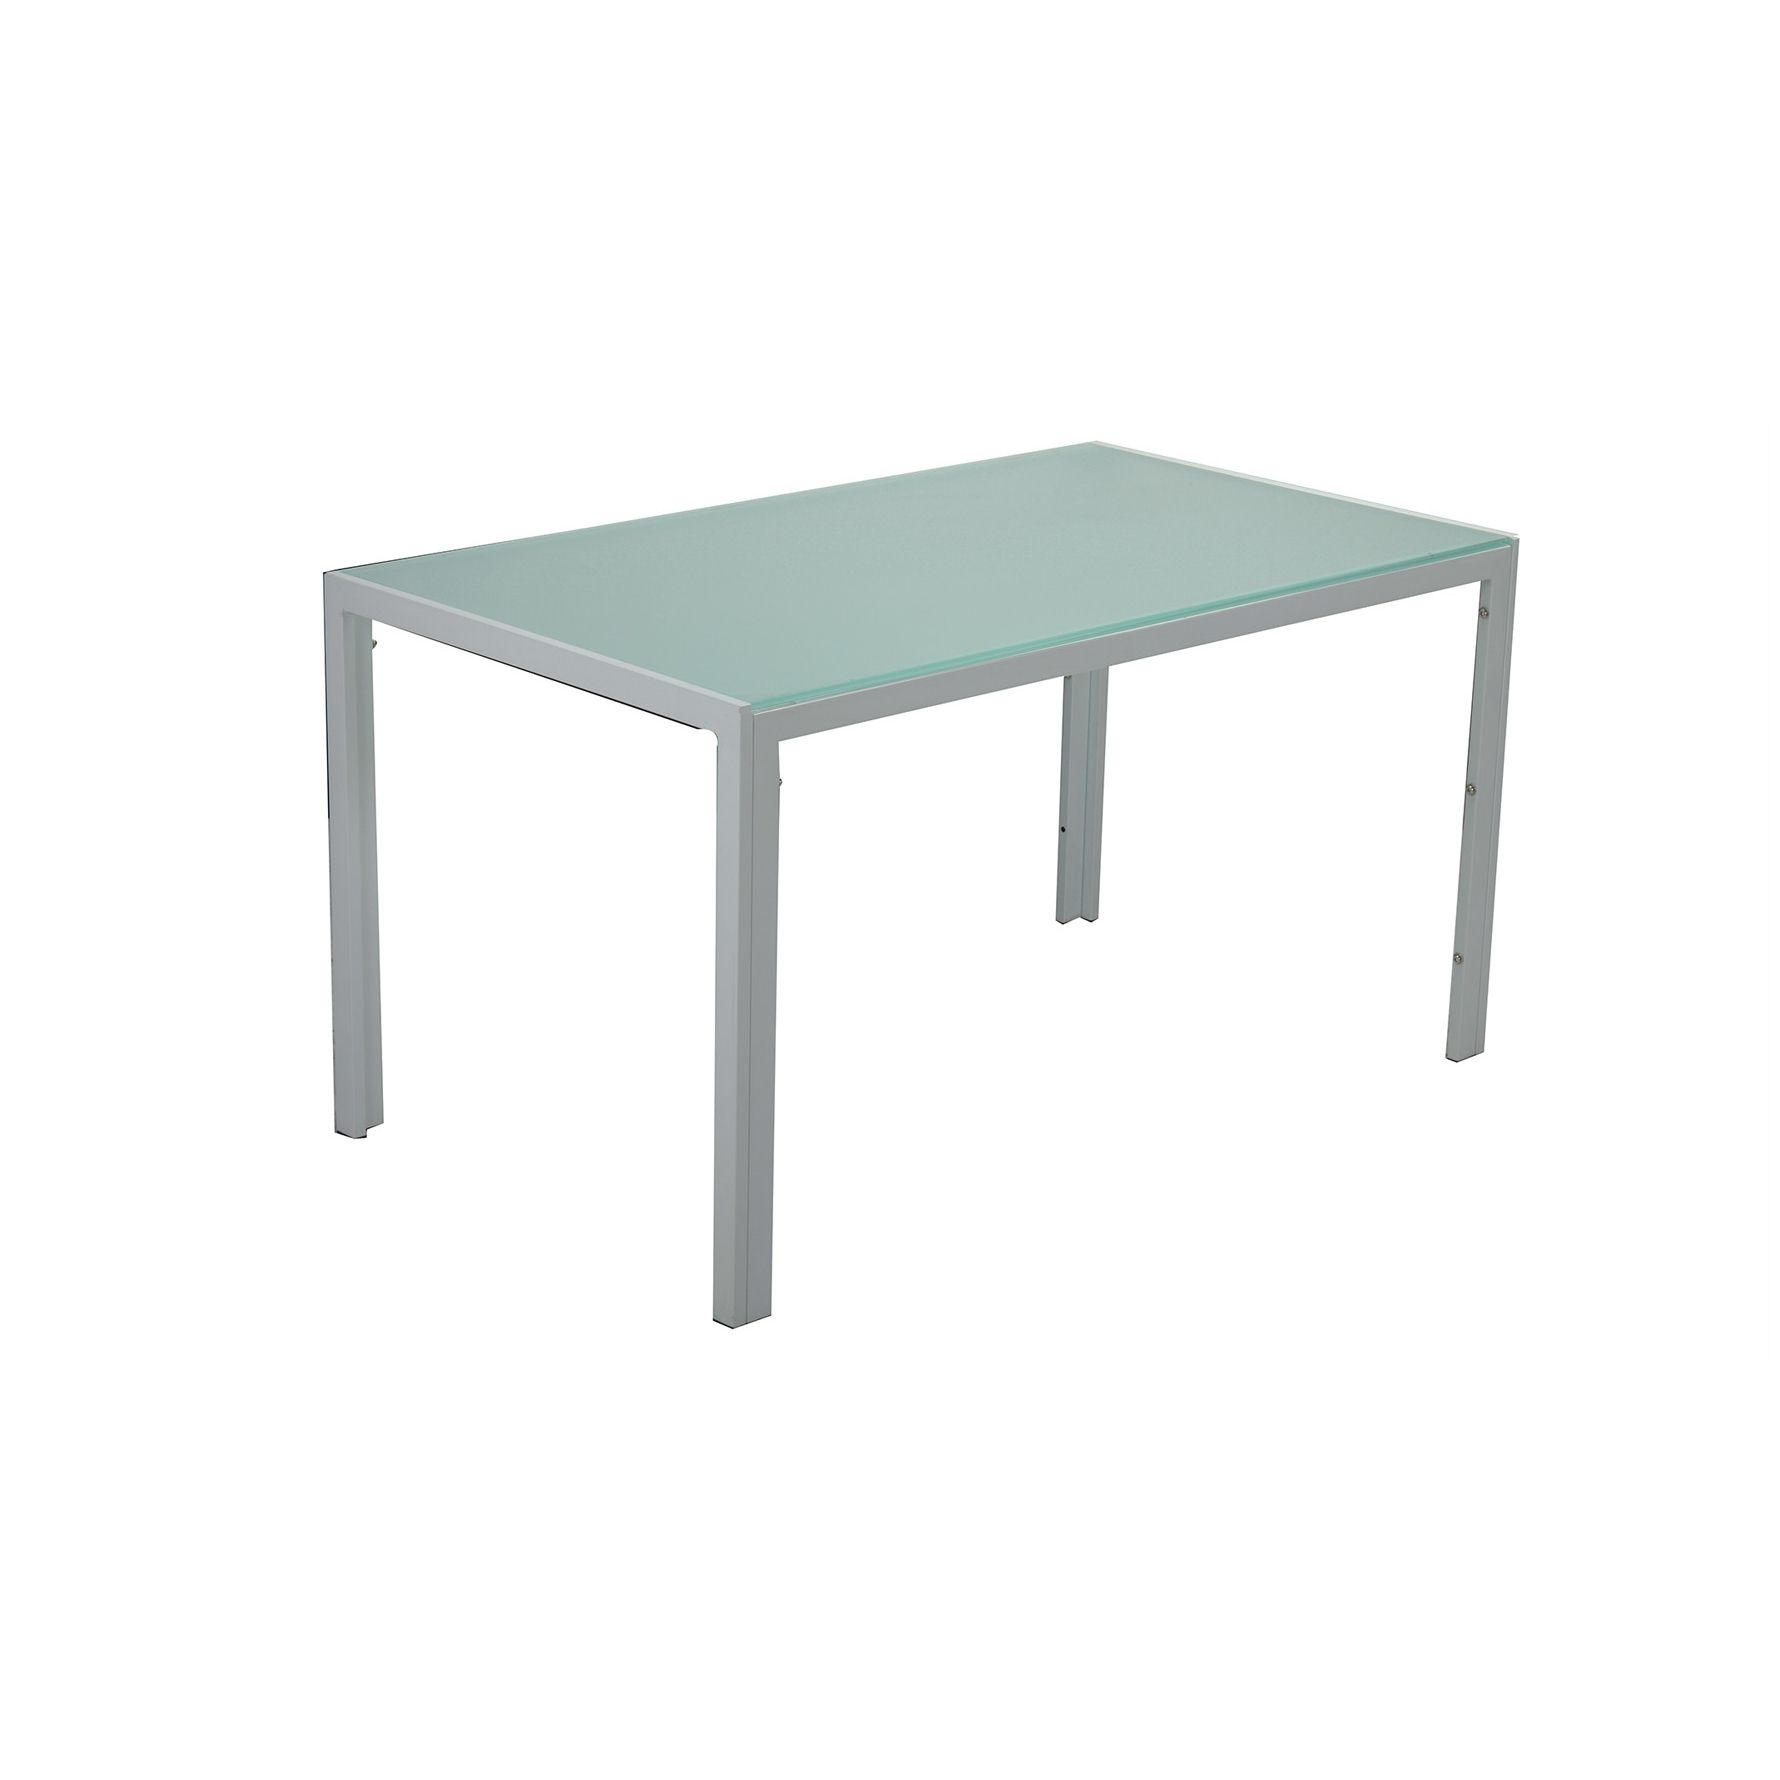 Table a manger verre blanc conceptions de maison for Table a manger verre